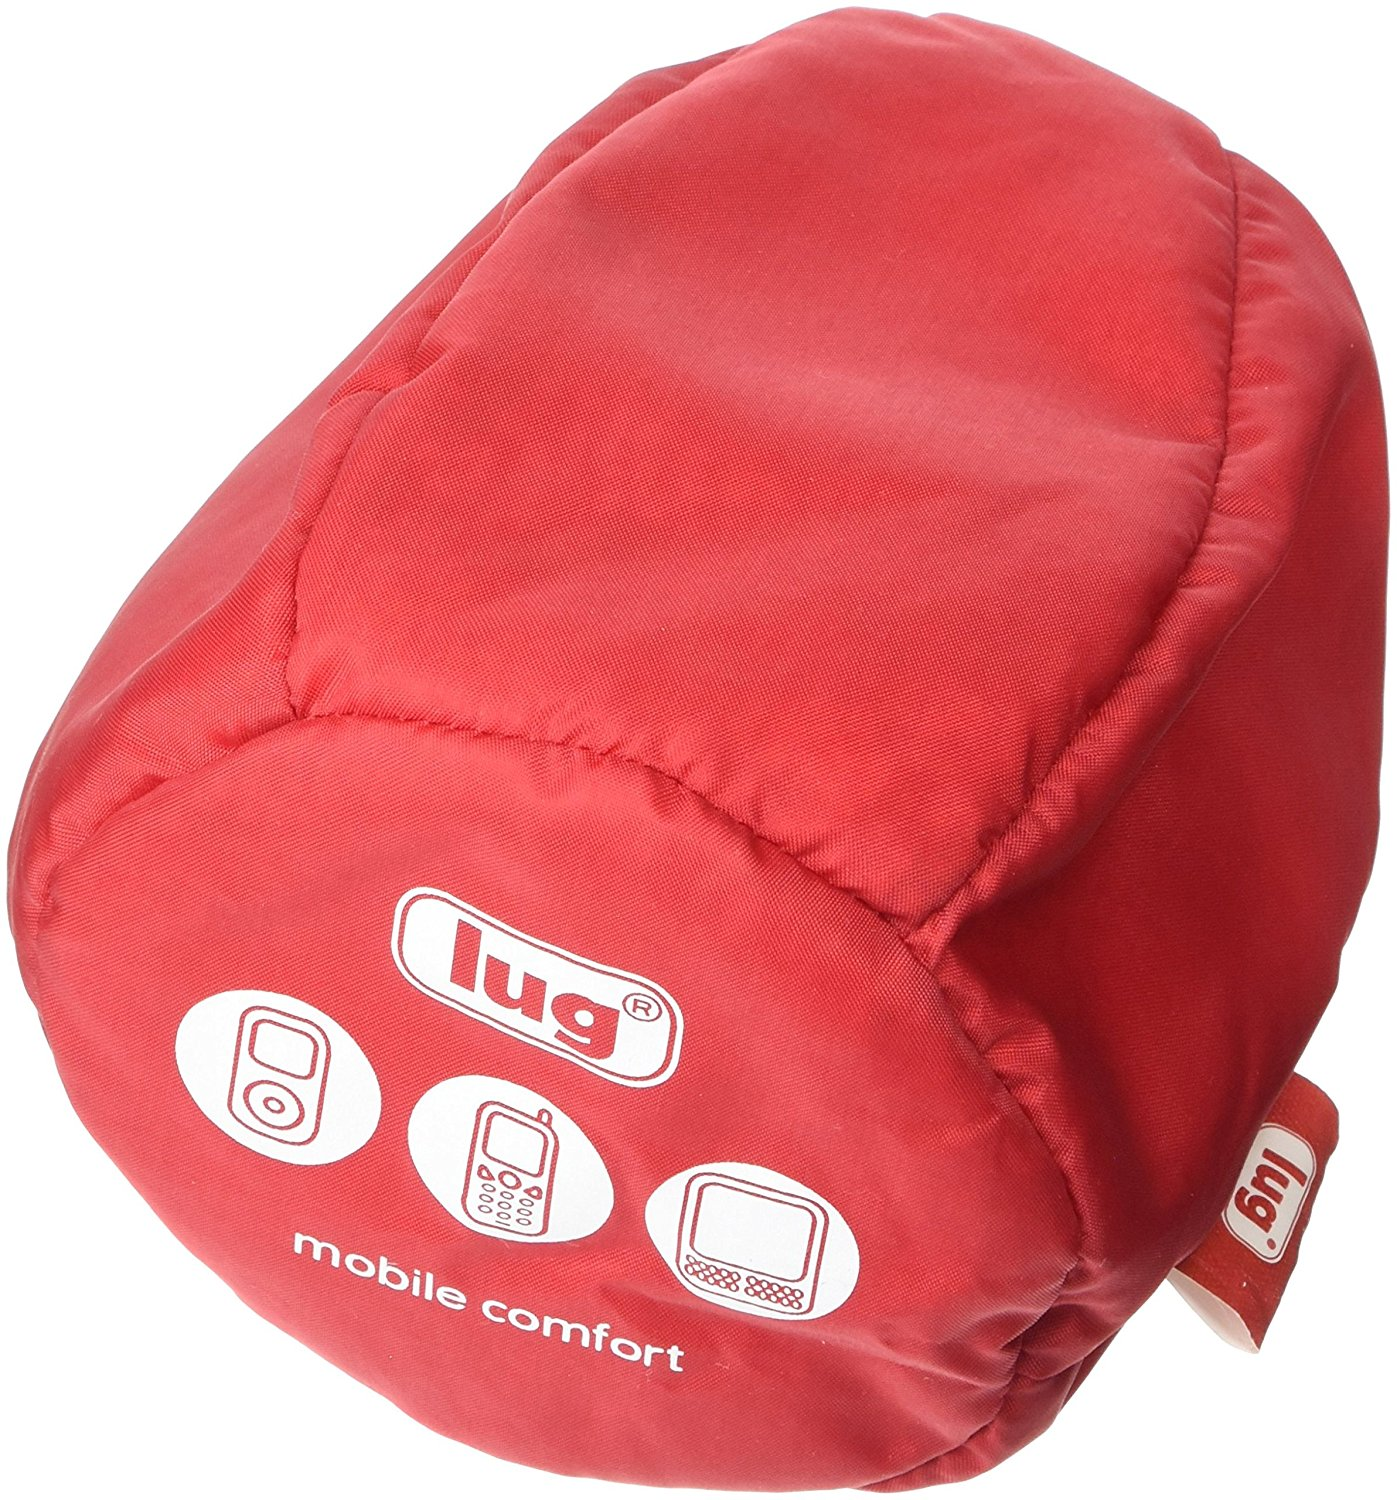 Beanie Chair Cell/IPod Holder, Crimson Red, Ipod holder By Lug From USA